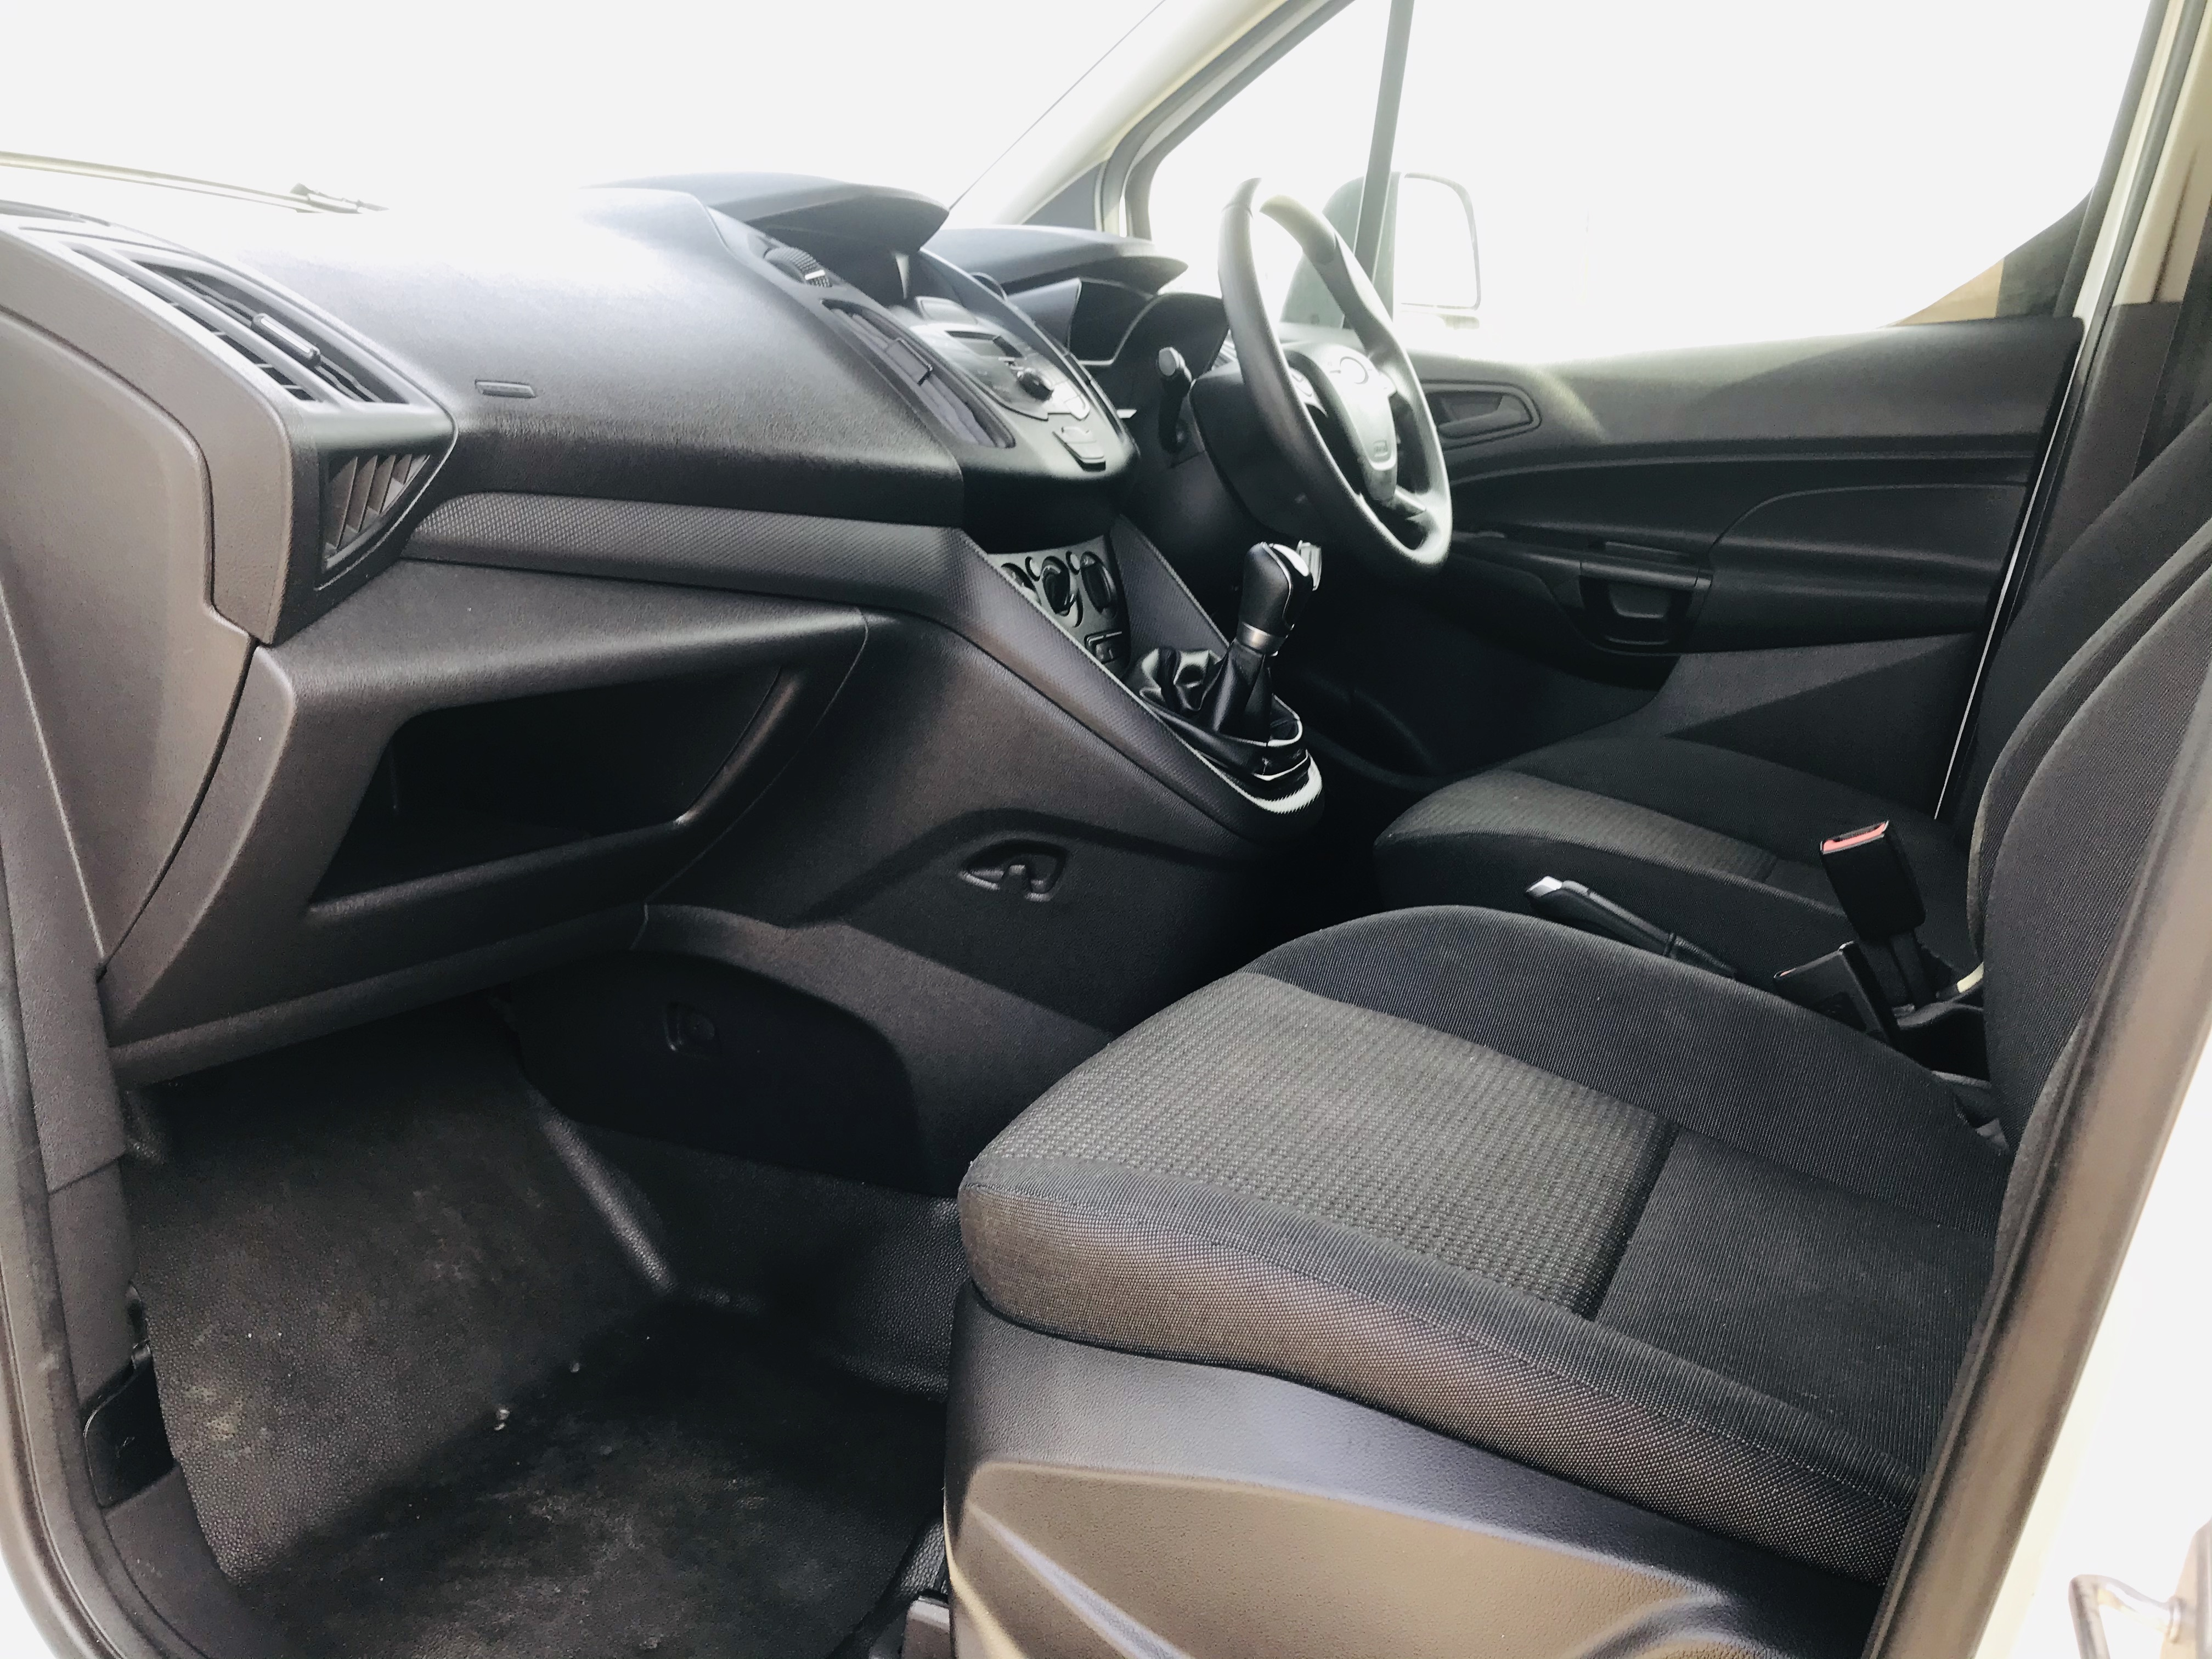 """ON SALE FORD TRANSIT CONNECT 1.6TDCI ECO-TECH 'LWB' 2017 REG - 1 OWNER - FSH - EURO 6""""ULEZ COMPLIANT - Image 27 of 30"""